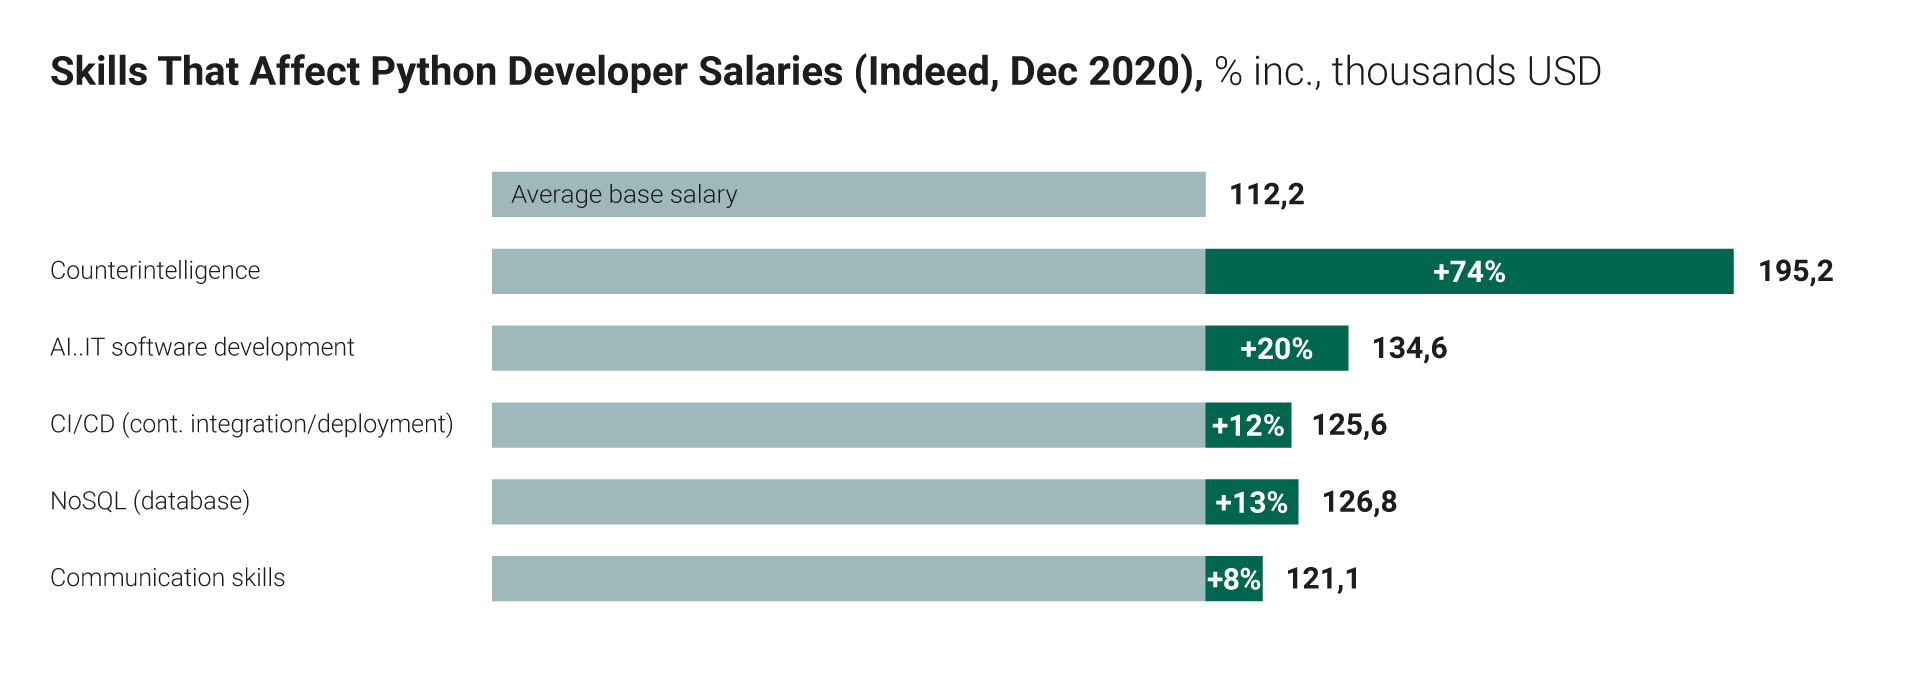 skills that affect python developer salaries